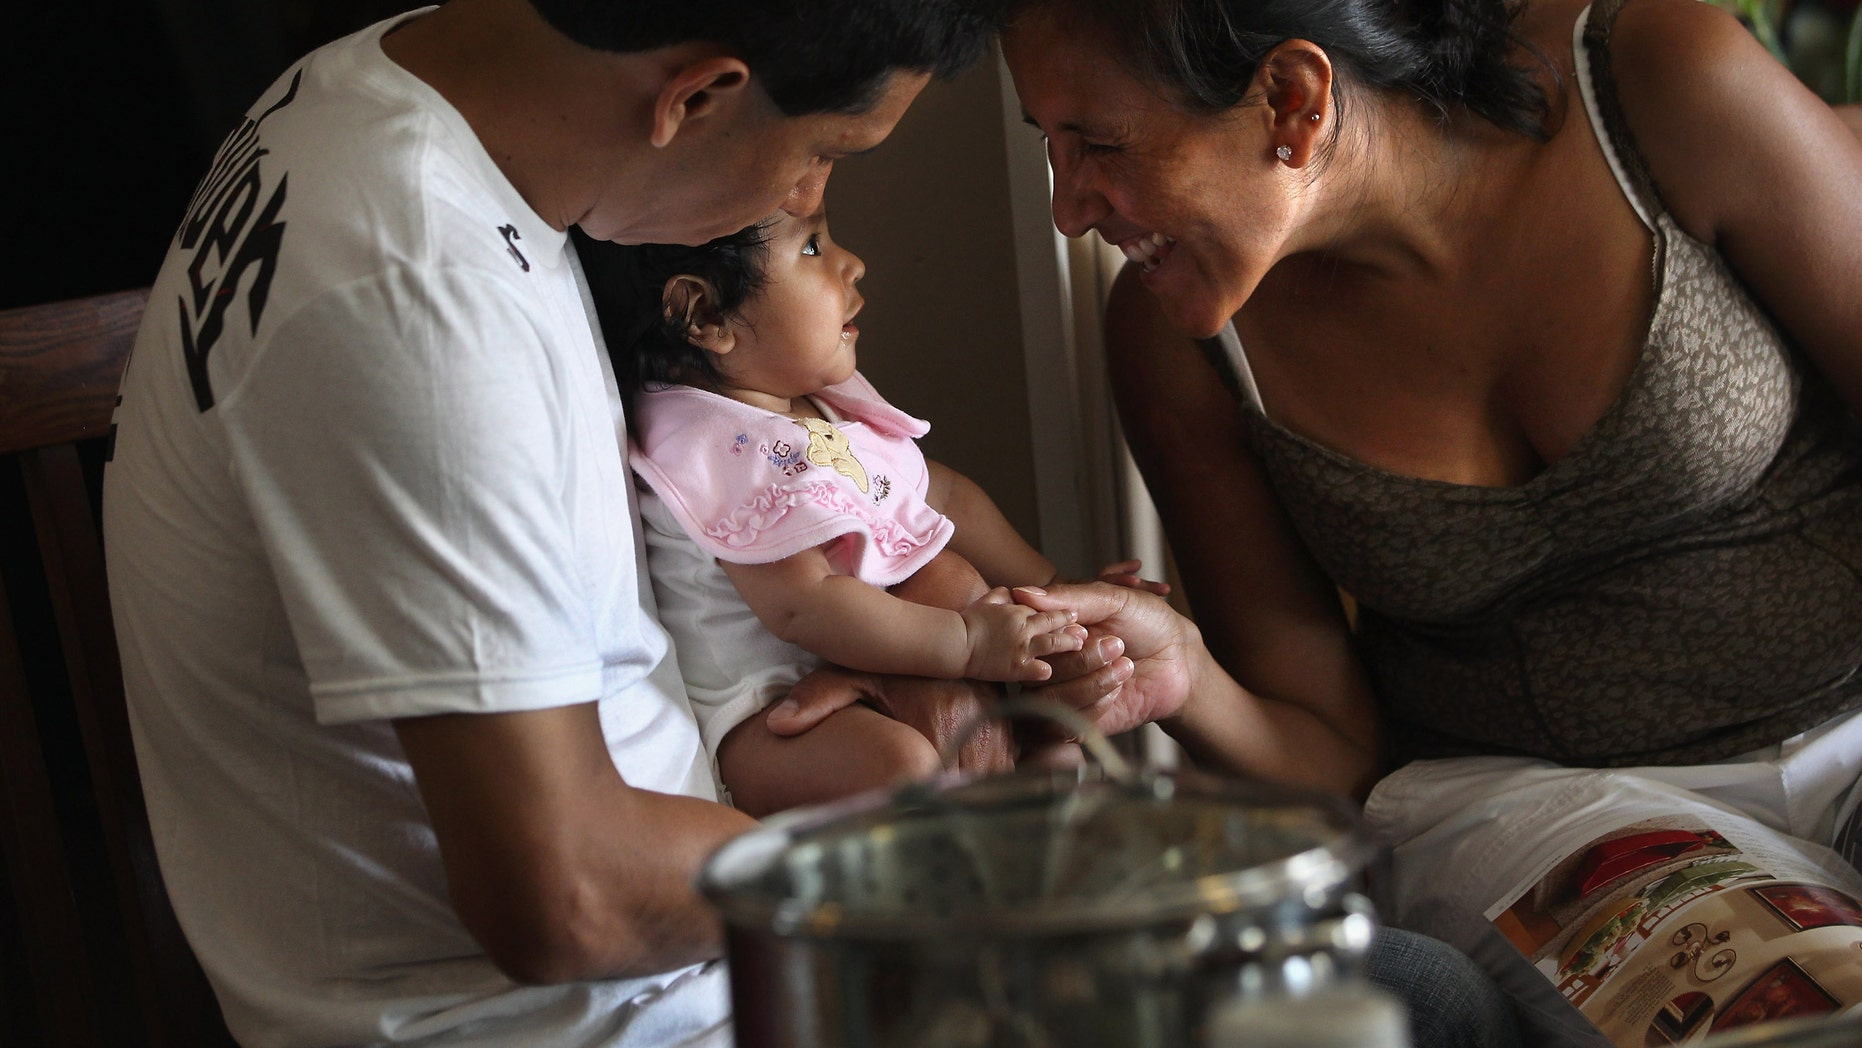 DENVER, CO - JULY 10:  Undocumented Mexican immigrant Jeanette Vizguerra sits with her husband Salvador and daughter Zuri, 5 months, on July 10, 2011 in Denver, Colorado. Vizguerra, a mother of four children, three of whom were born in the U.S. as American citizens, is facing a deportation hearing July 13 at Denver's Federal Courthouse. If Vizguerra is deported back to Mexico, she says her husband and children will stay on in the United States. Just one of millions of undocumented immigrants living in the U.S., Vizguerra first came to Colorado from Mexico City with her husband and first child 14 years before. Now an activist for the immigration advocate group Rights For All People, she also owns a janitorial service and says she has always paid state and federal taxes on her income. Some two years ago she was stopped by a traffic policemen for driving with expired tags and taken to jail when she could not prove her legal immigration status. Out on bail during court proceedings, she now faces the real possibility that she will be deported to Mexico and separated from her family in the United States.  (Photo by John Moore/Getty Images)